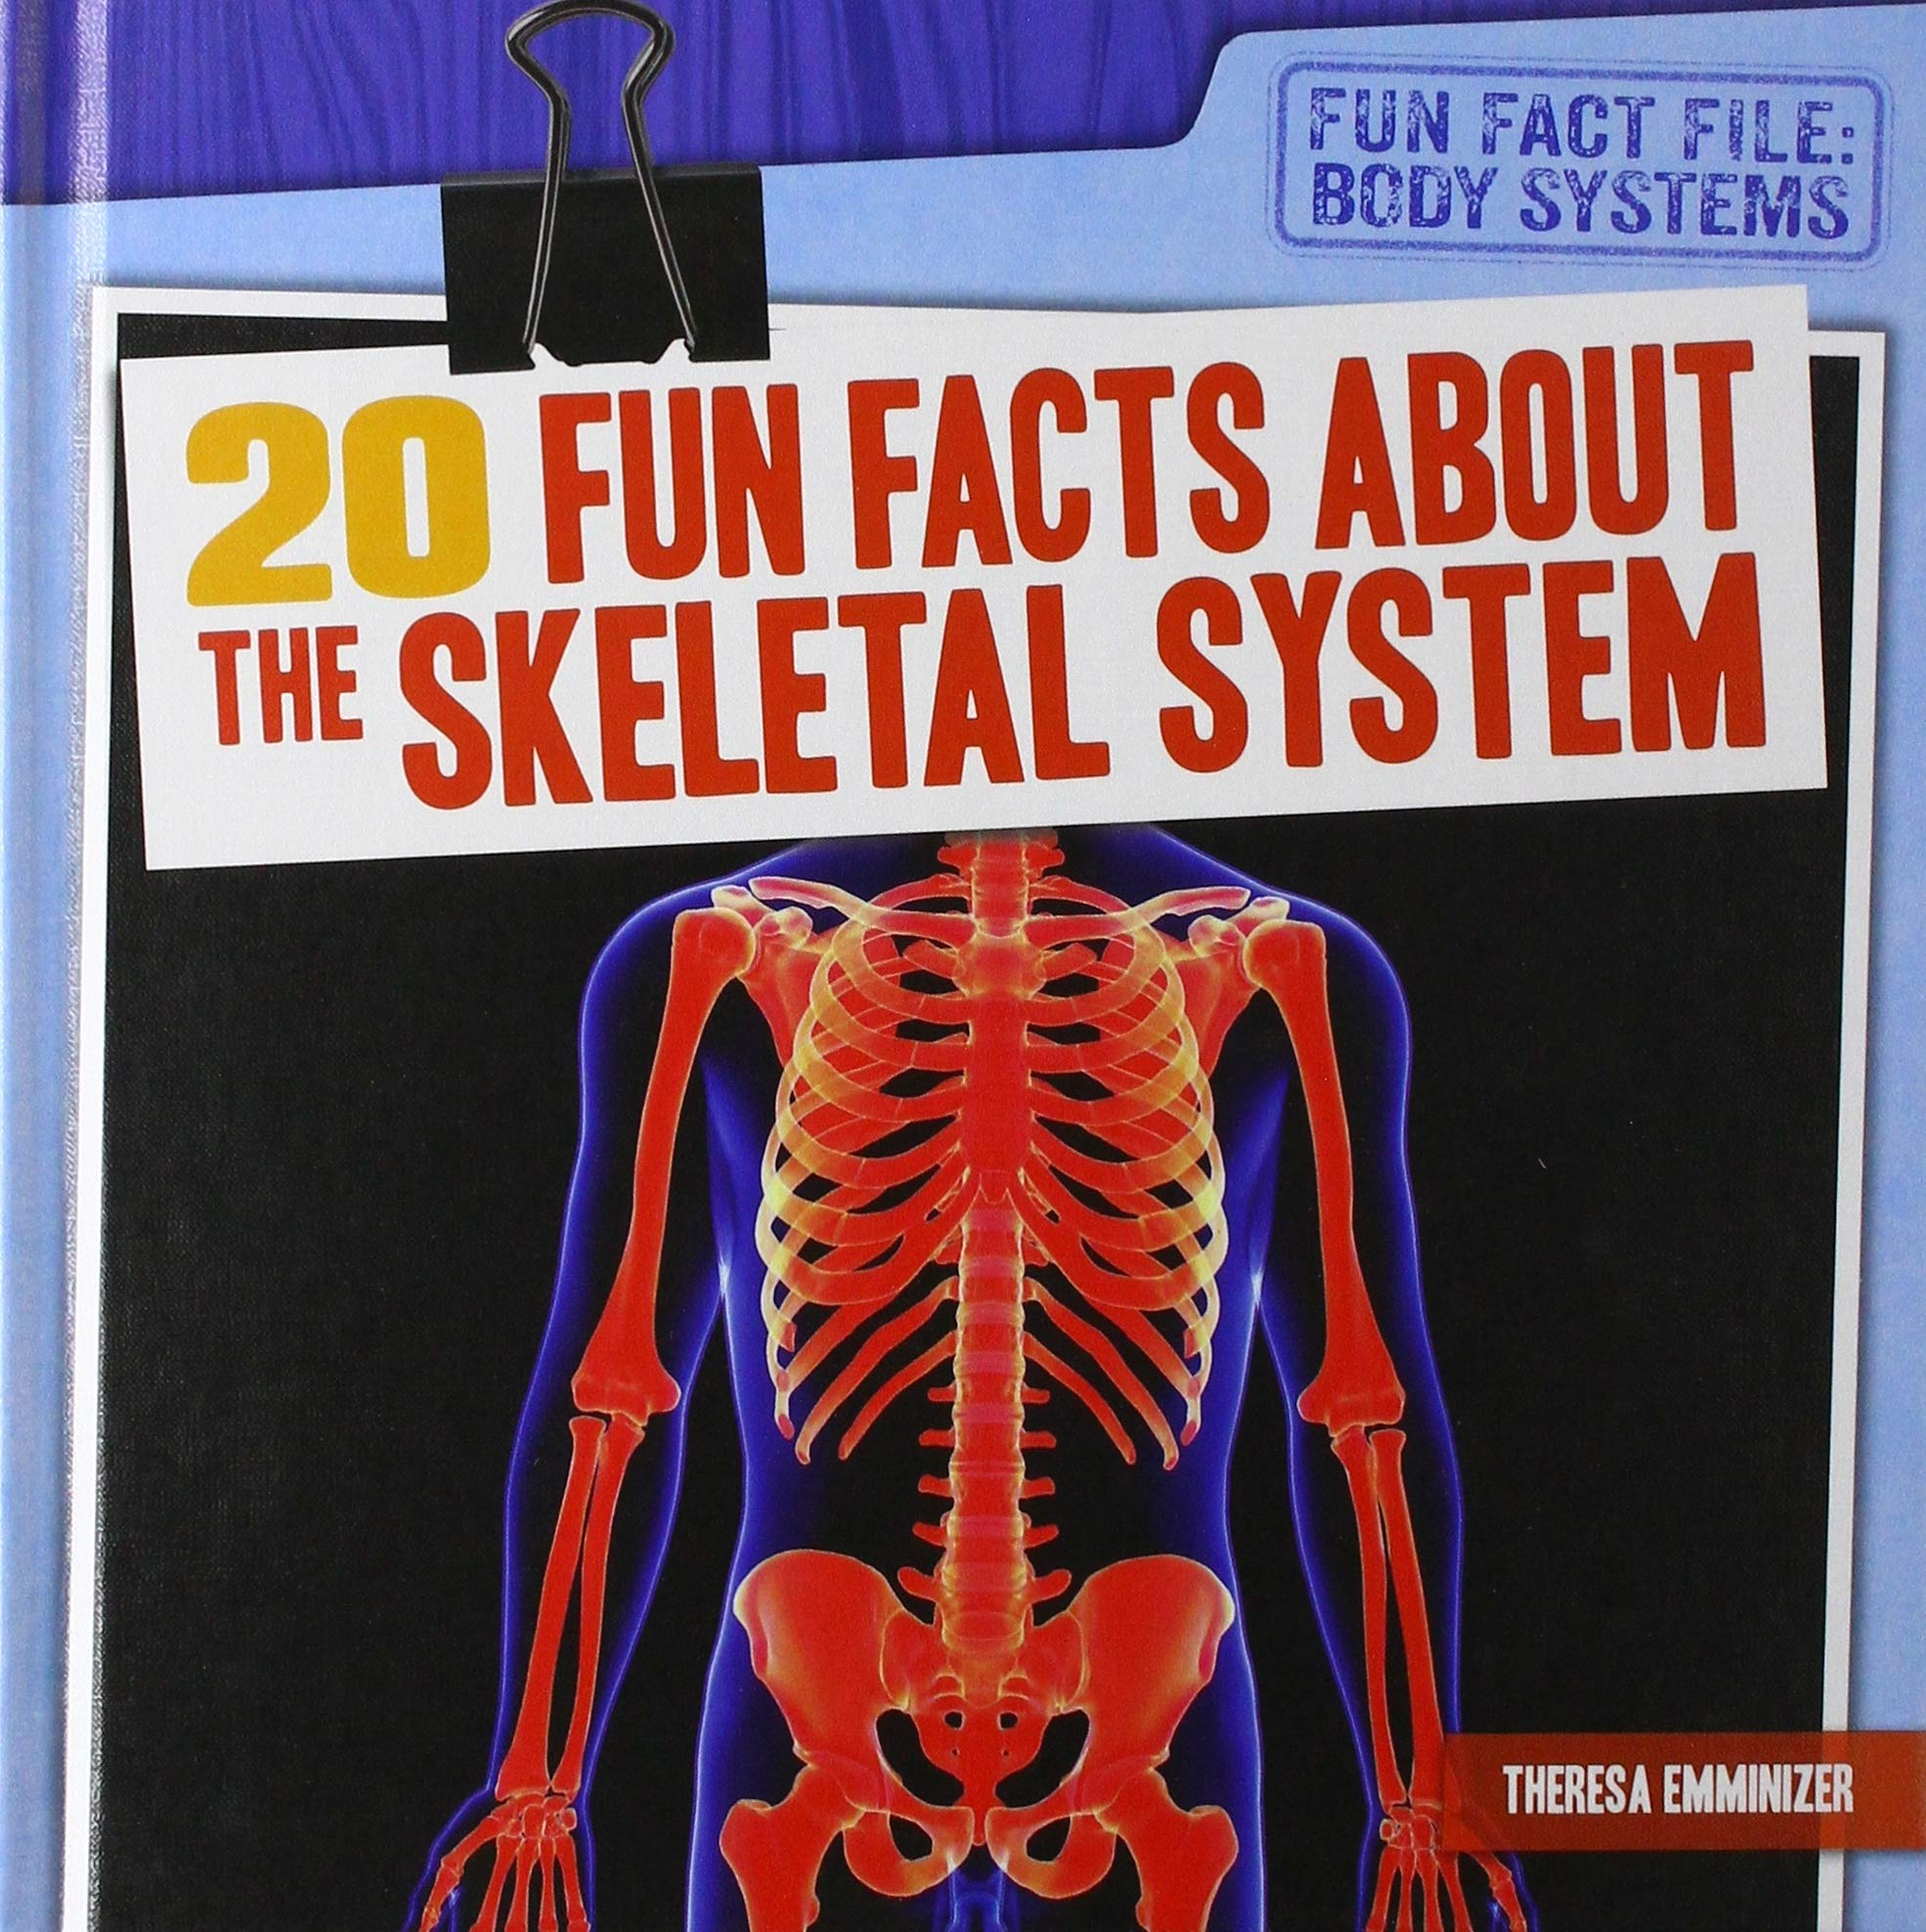 20 Fun Facts About The Skeletal System Fun Fact File Body Systems